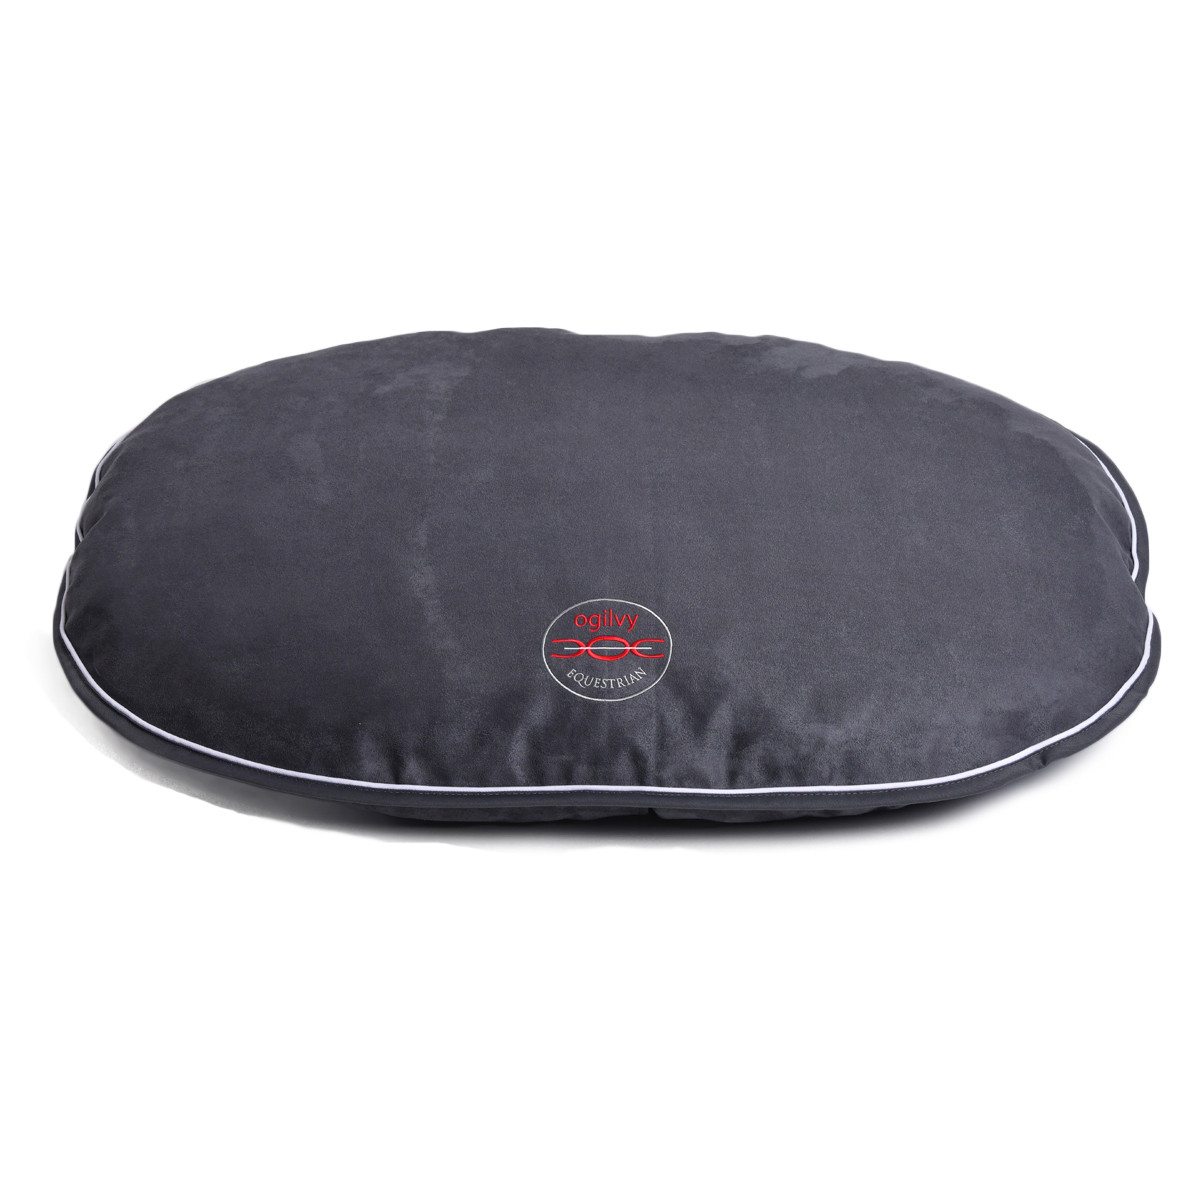 Ogilvy Memory Foam Dog Bed with Cover - Medium